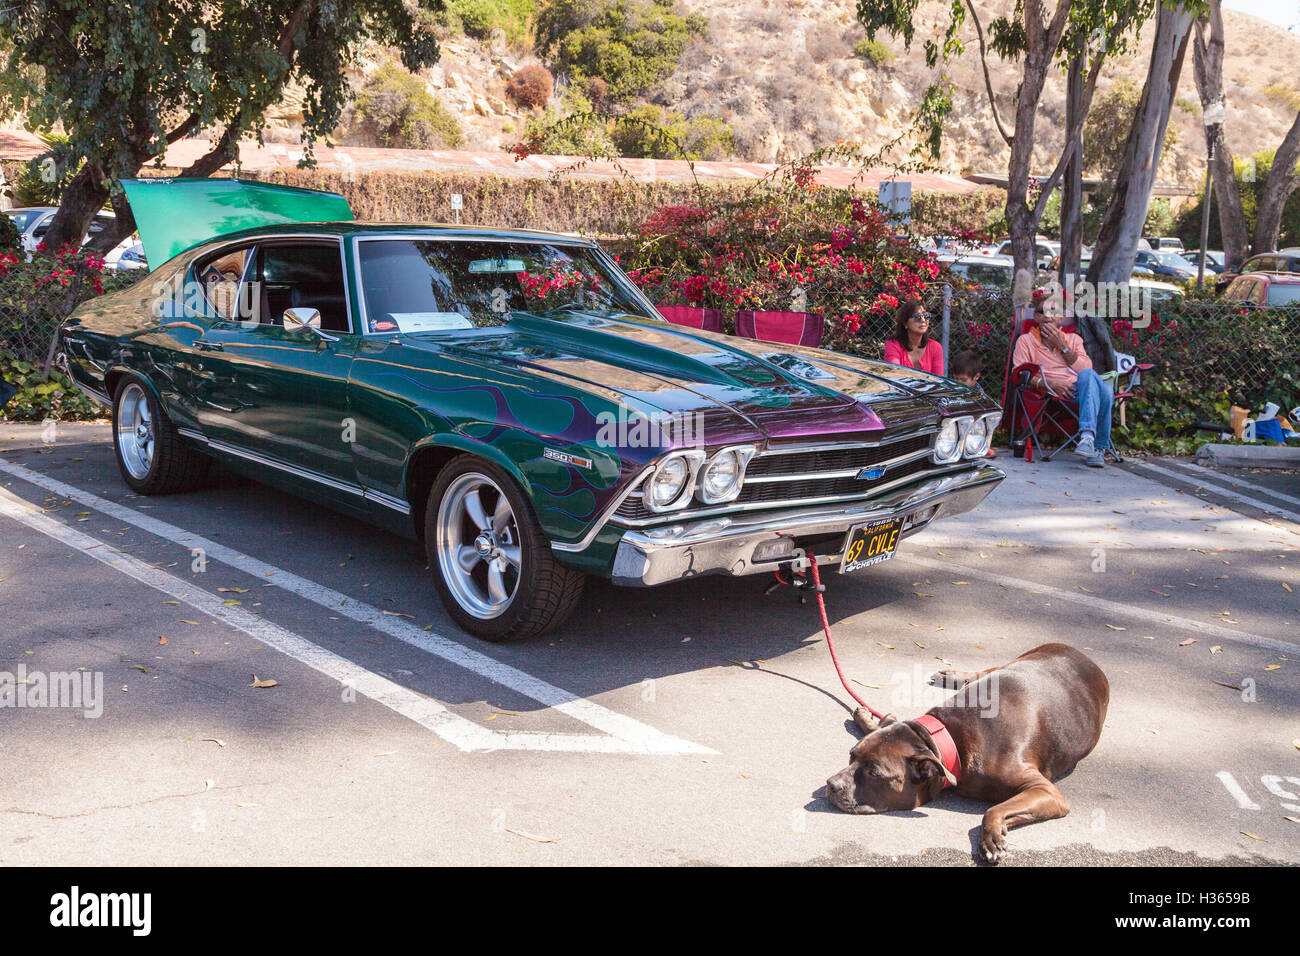 Chevy Chevelle 2016 >> Green And Blue 1969 Chevy Chevelle Owned By John Pettinato